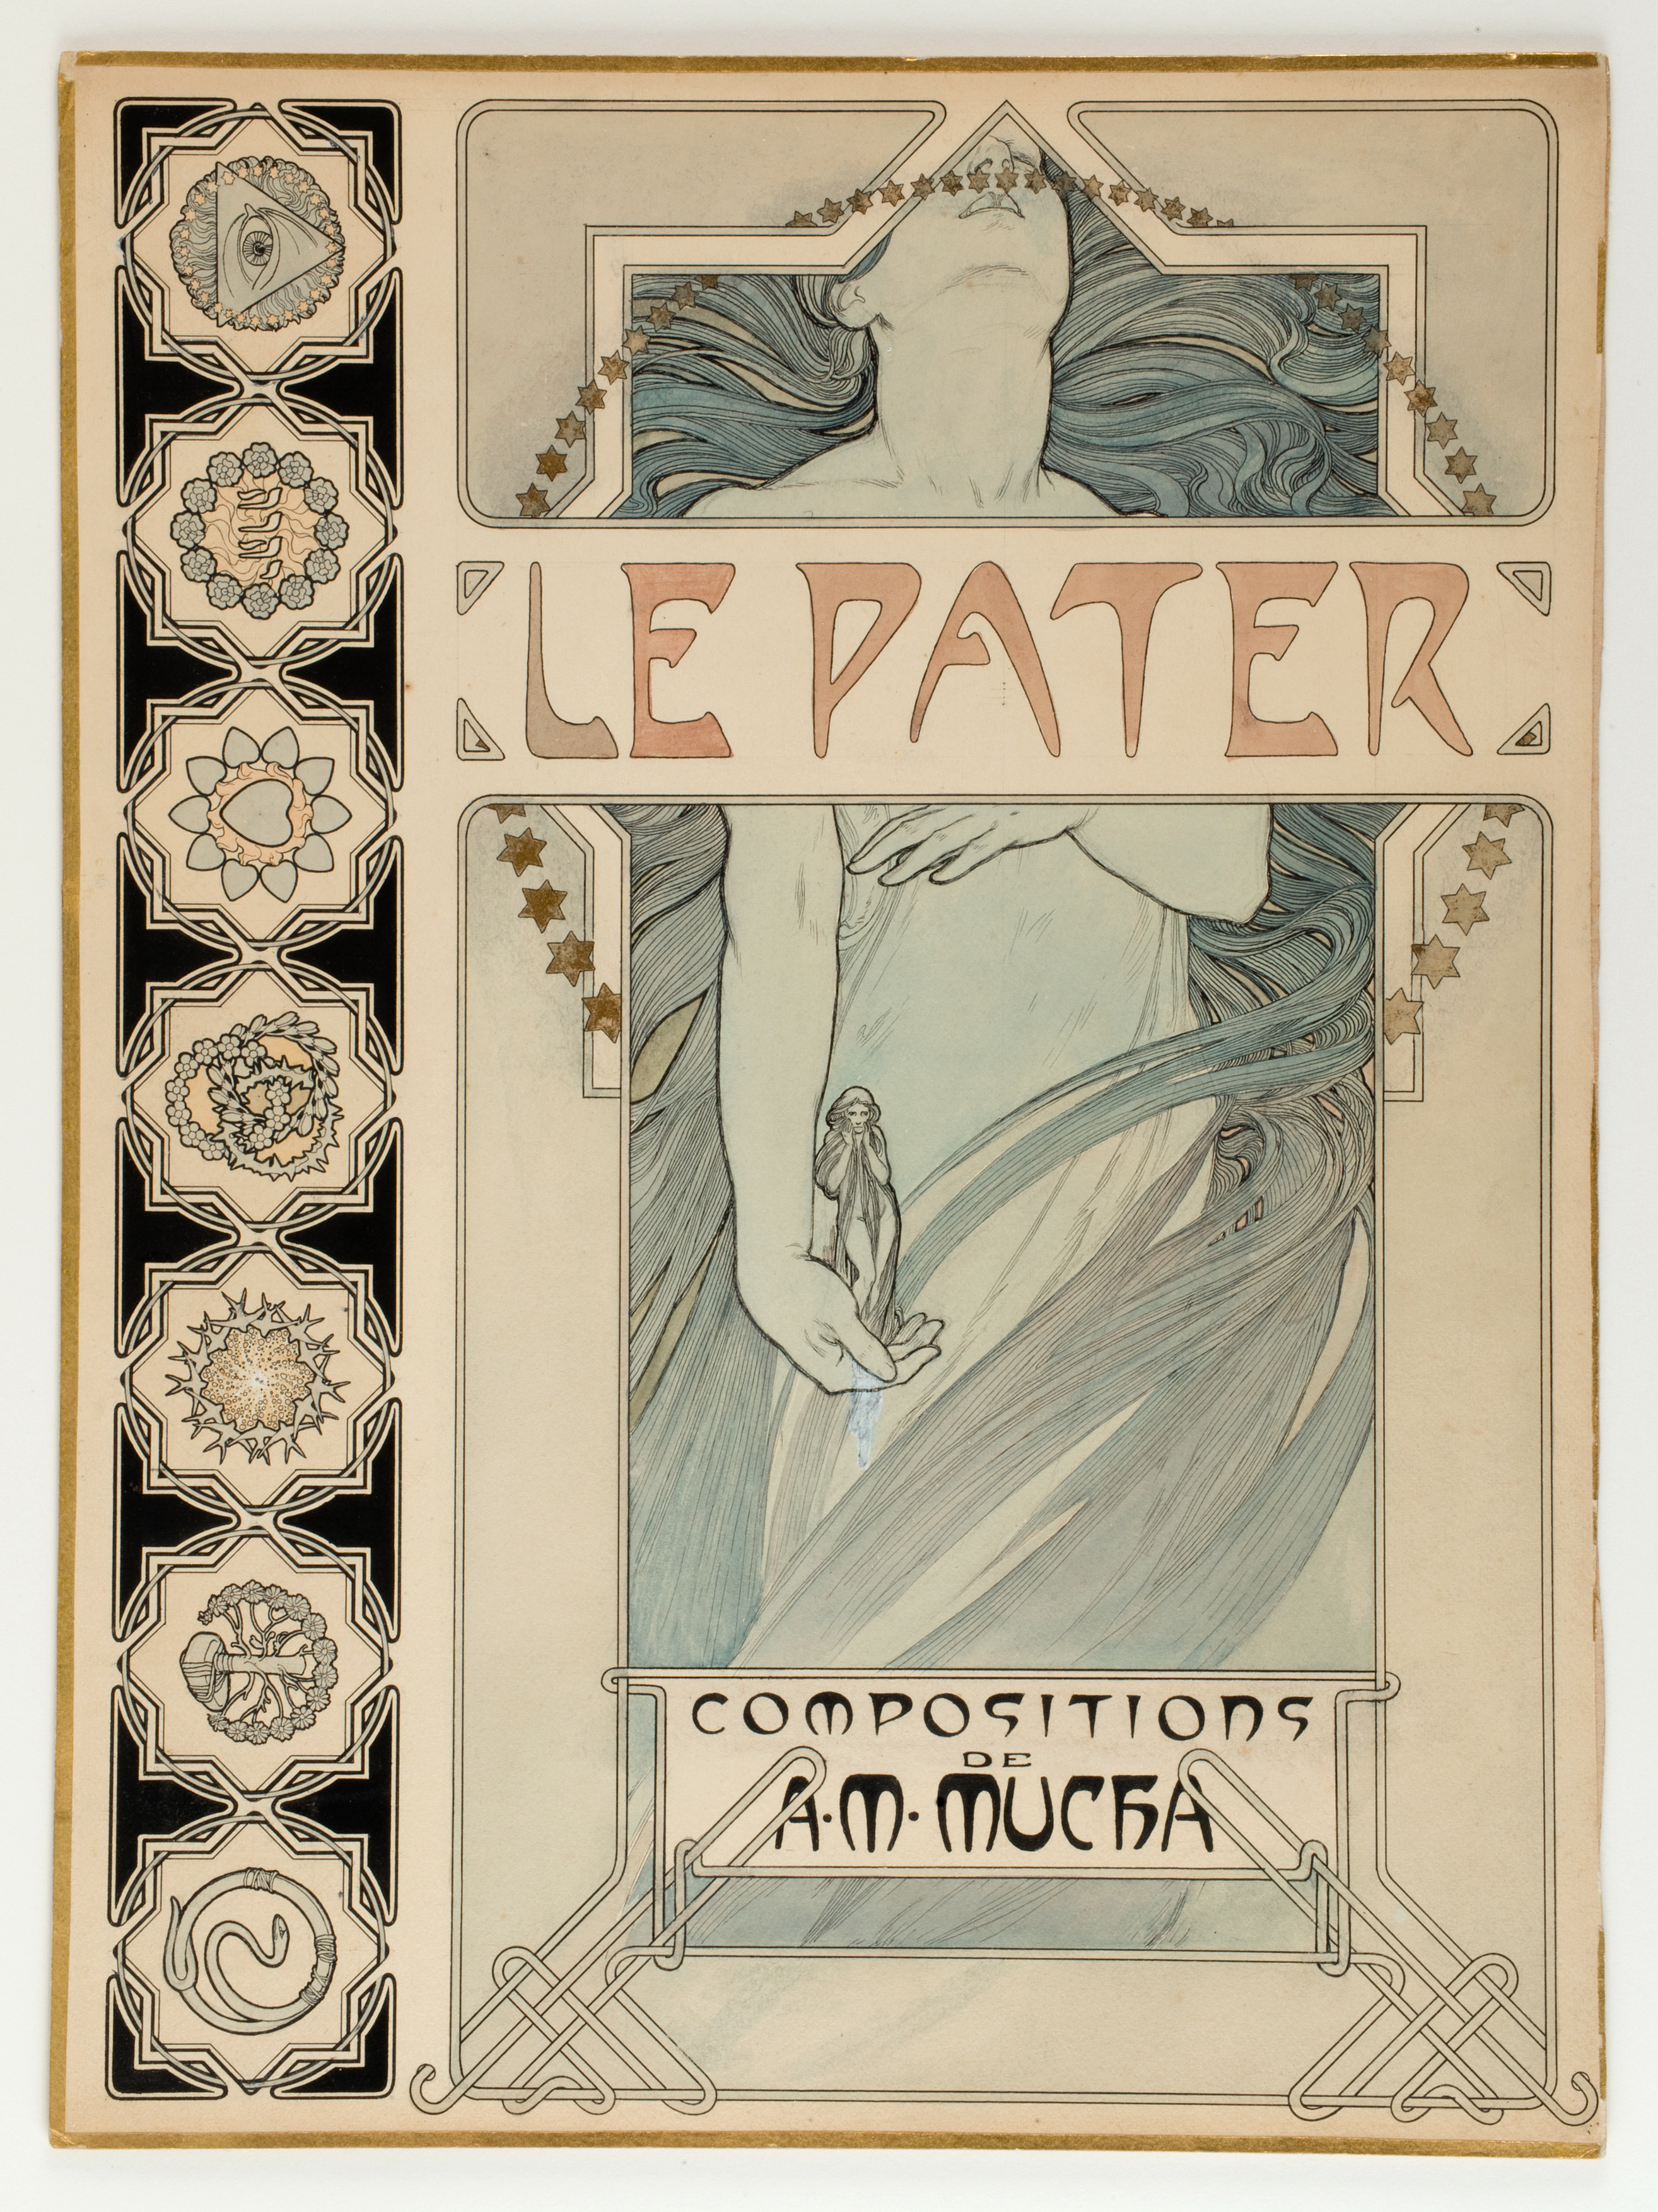 a unique collection of works by alphonse mucha donated to the museum of decorative arts in